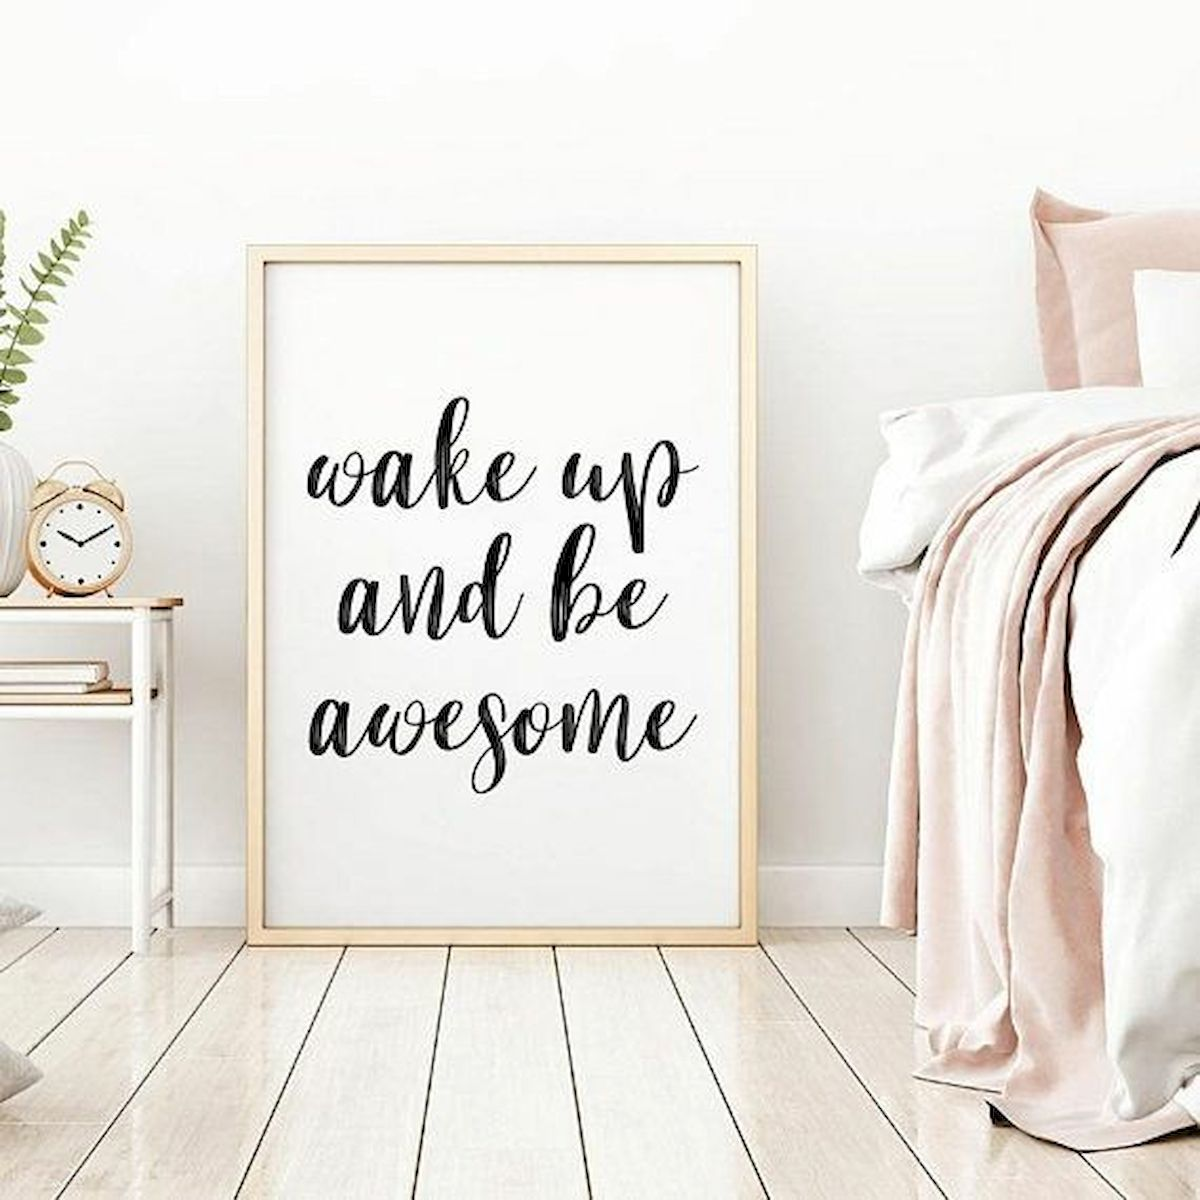 70 Simple Wall Bedroom Decor and Design Ideas (30)